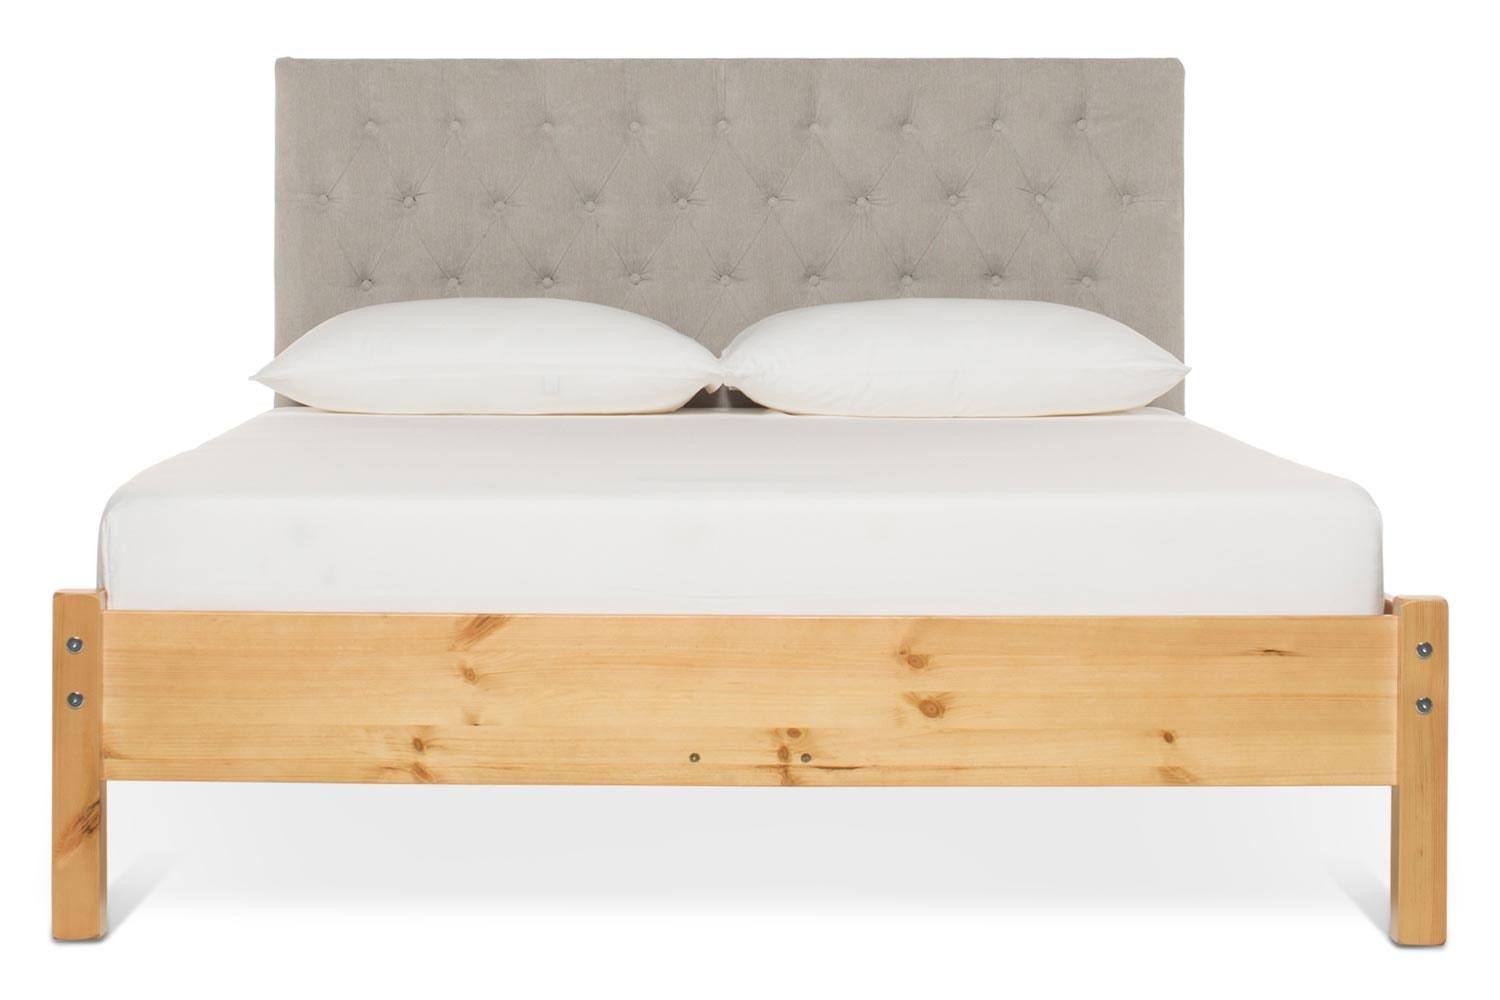 Emily Loft Natural Bed Frame | 6FT | Marley Headboard Silver